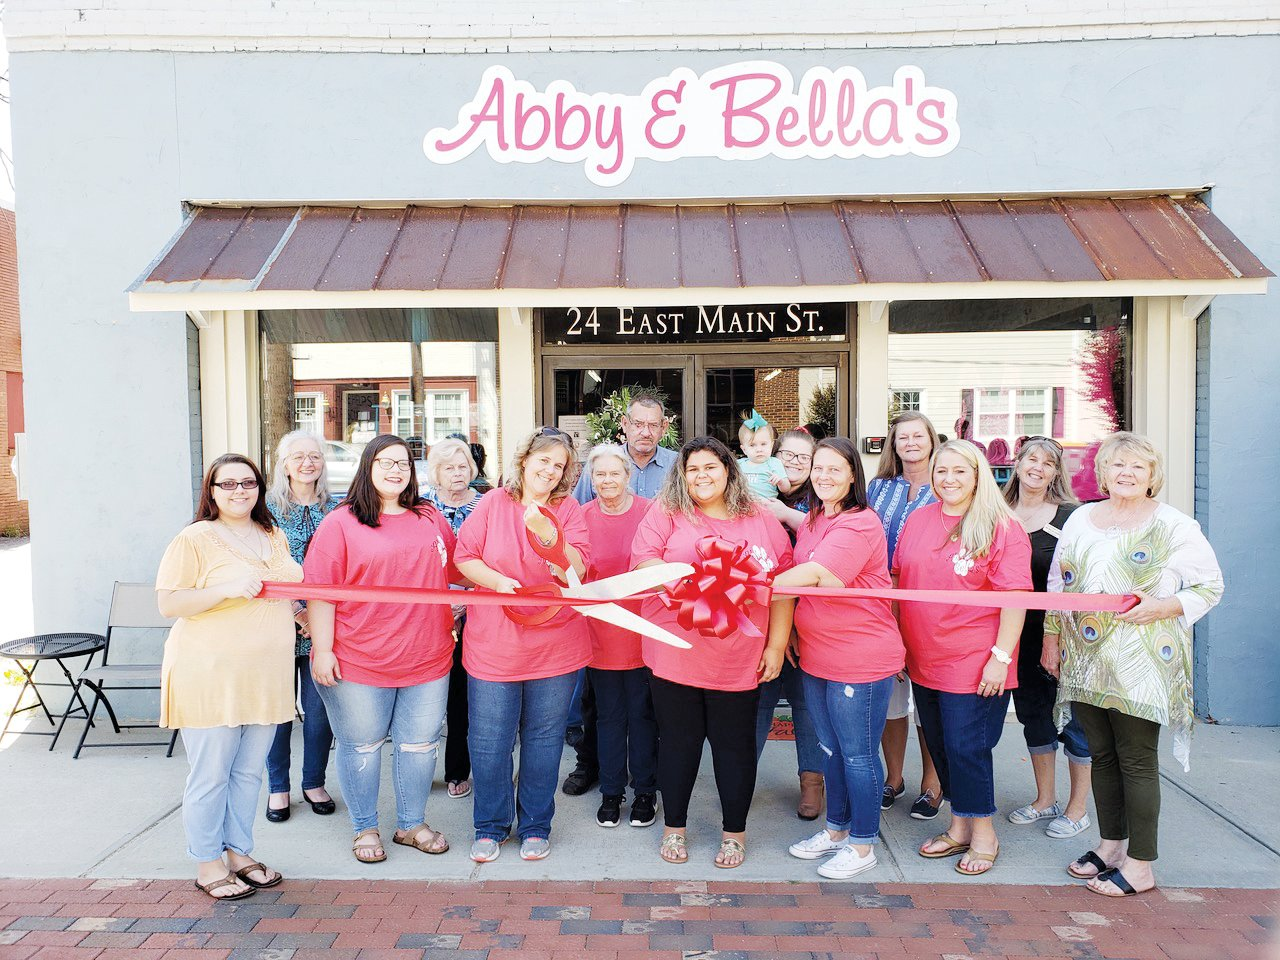 Abby & Bella's a new resale store in Coats celebrated its grand opening with a ribbon-cutting.